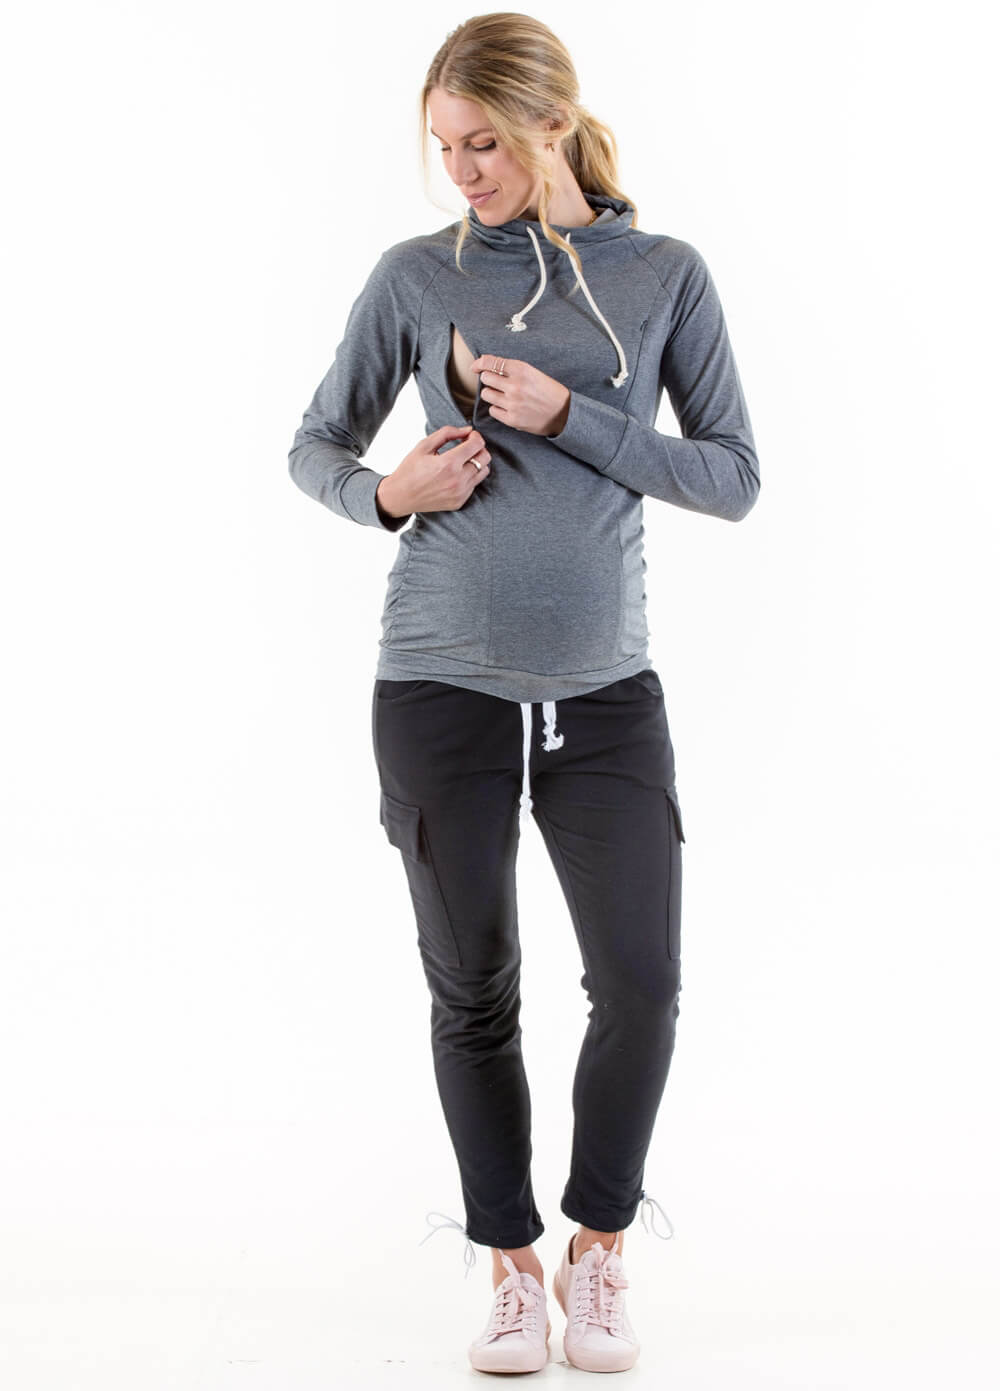 Ayette Cowl Neck Maternity Nursing Pullover in Grey by Lait & Co